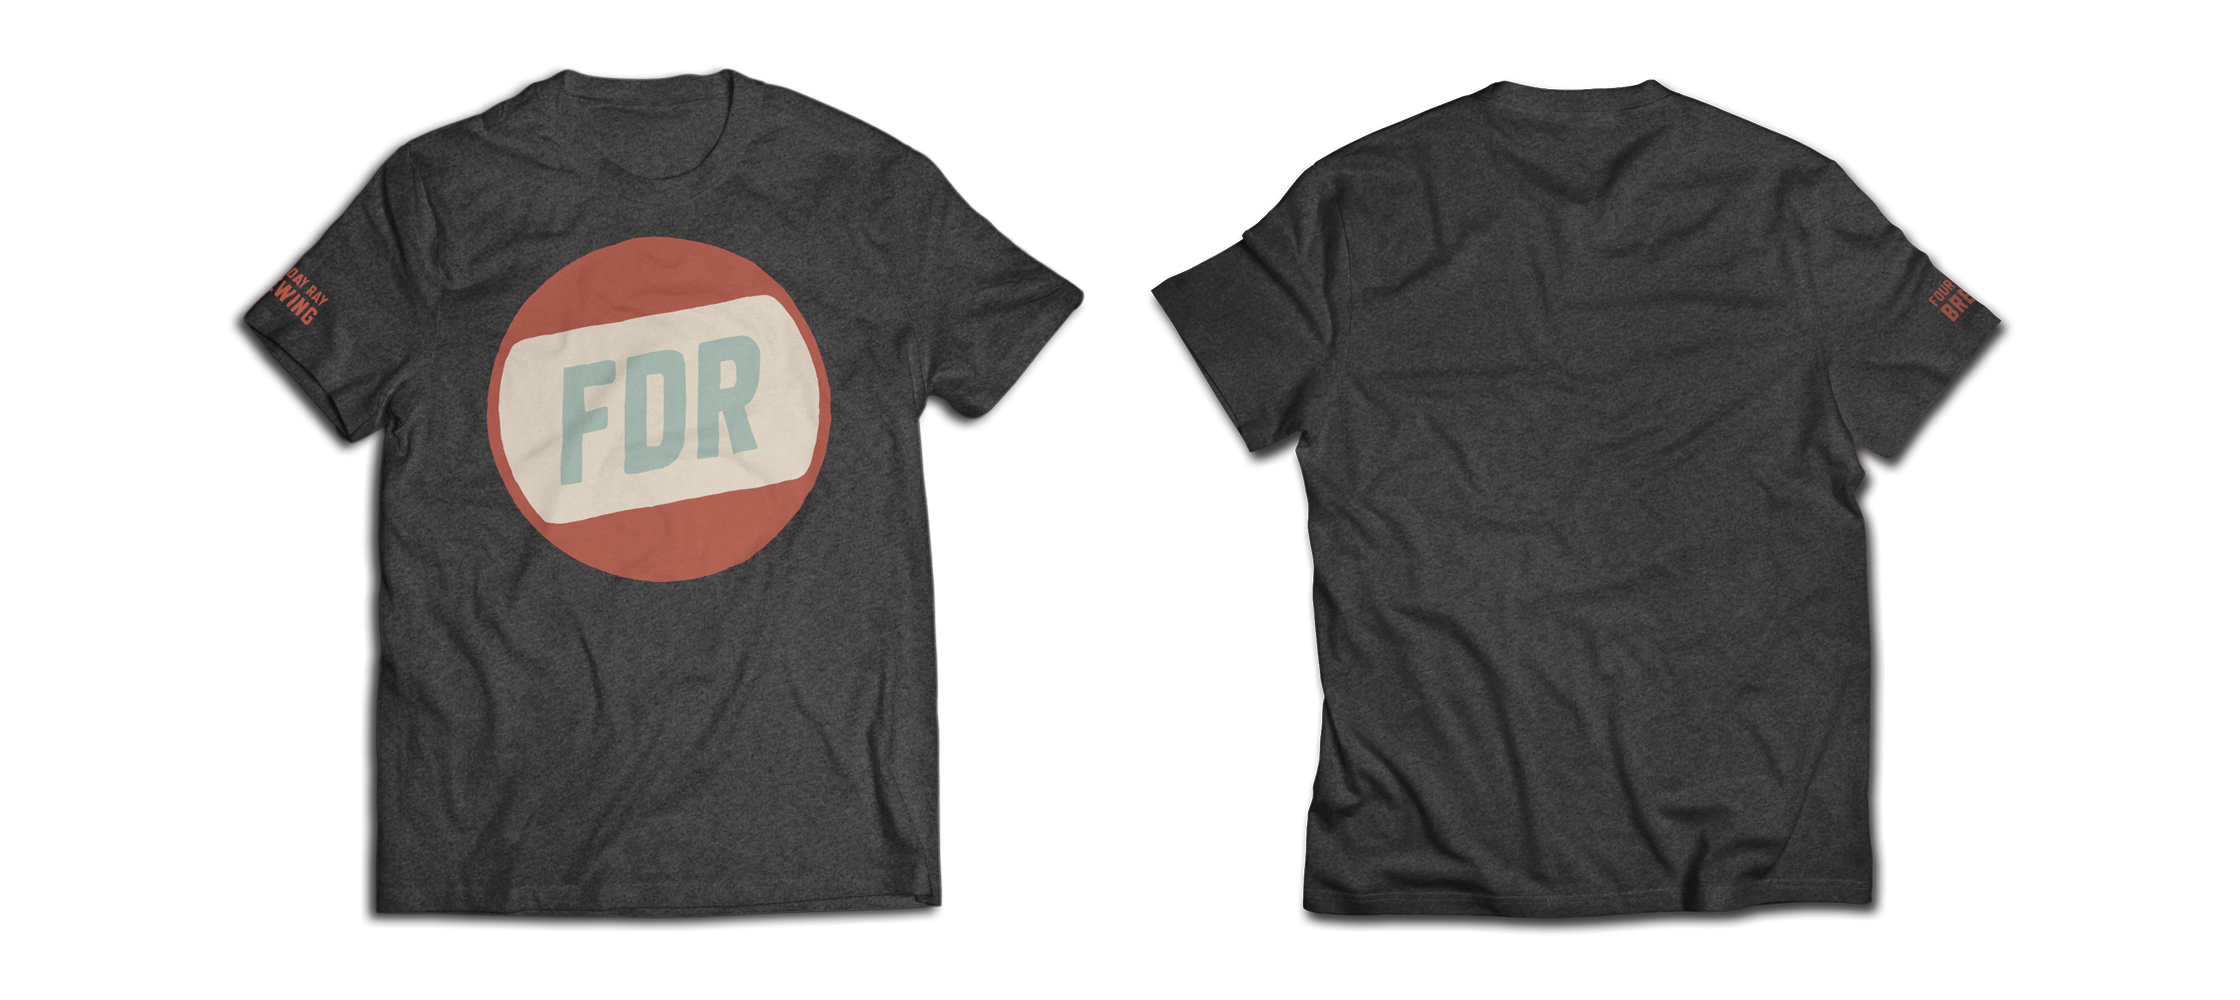 FDR T-Shirt: Campaign Button